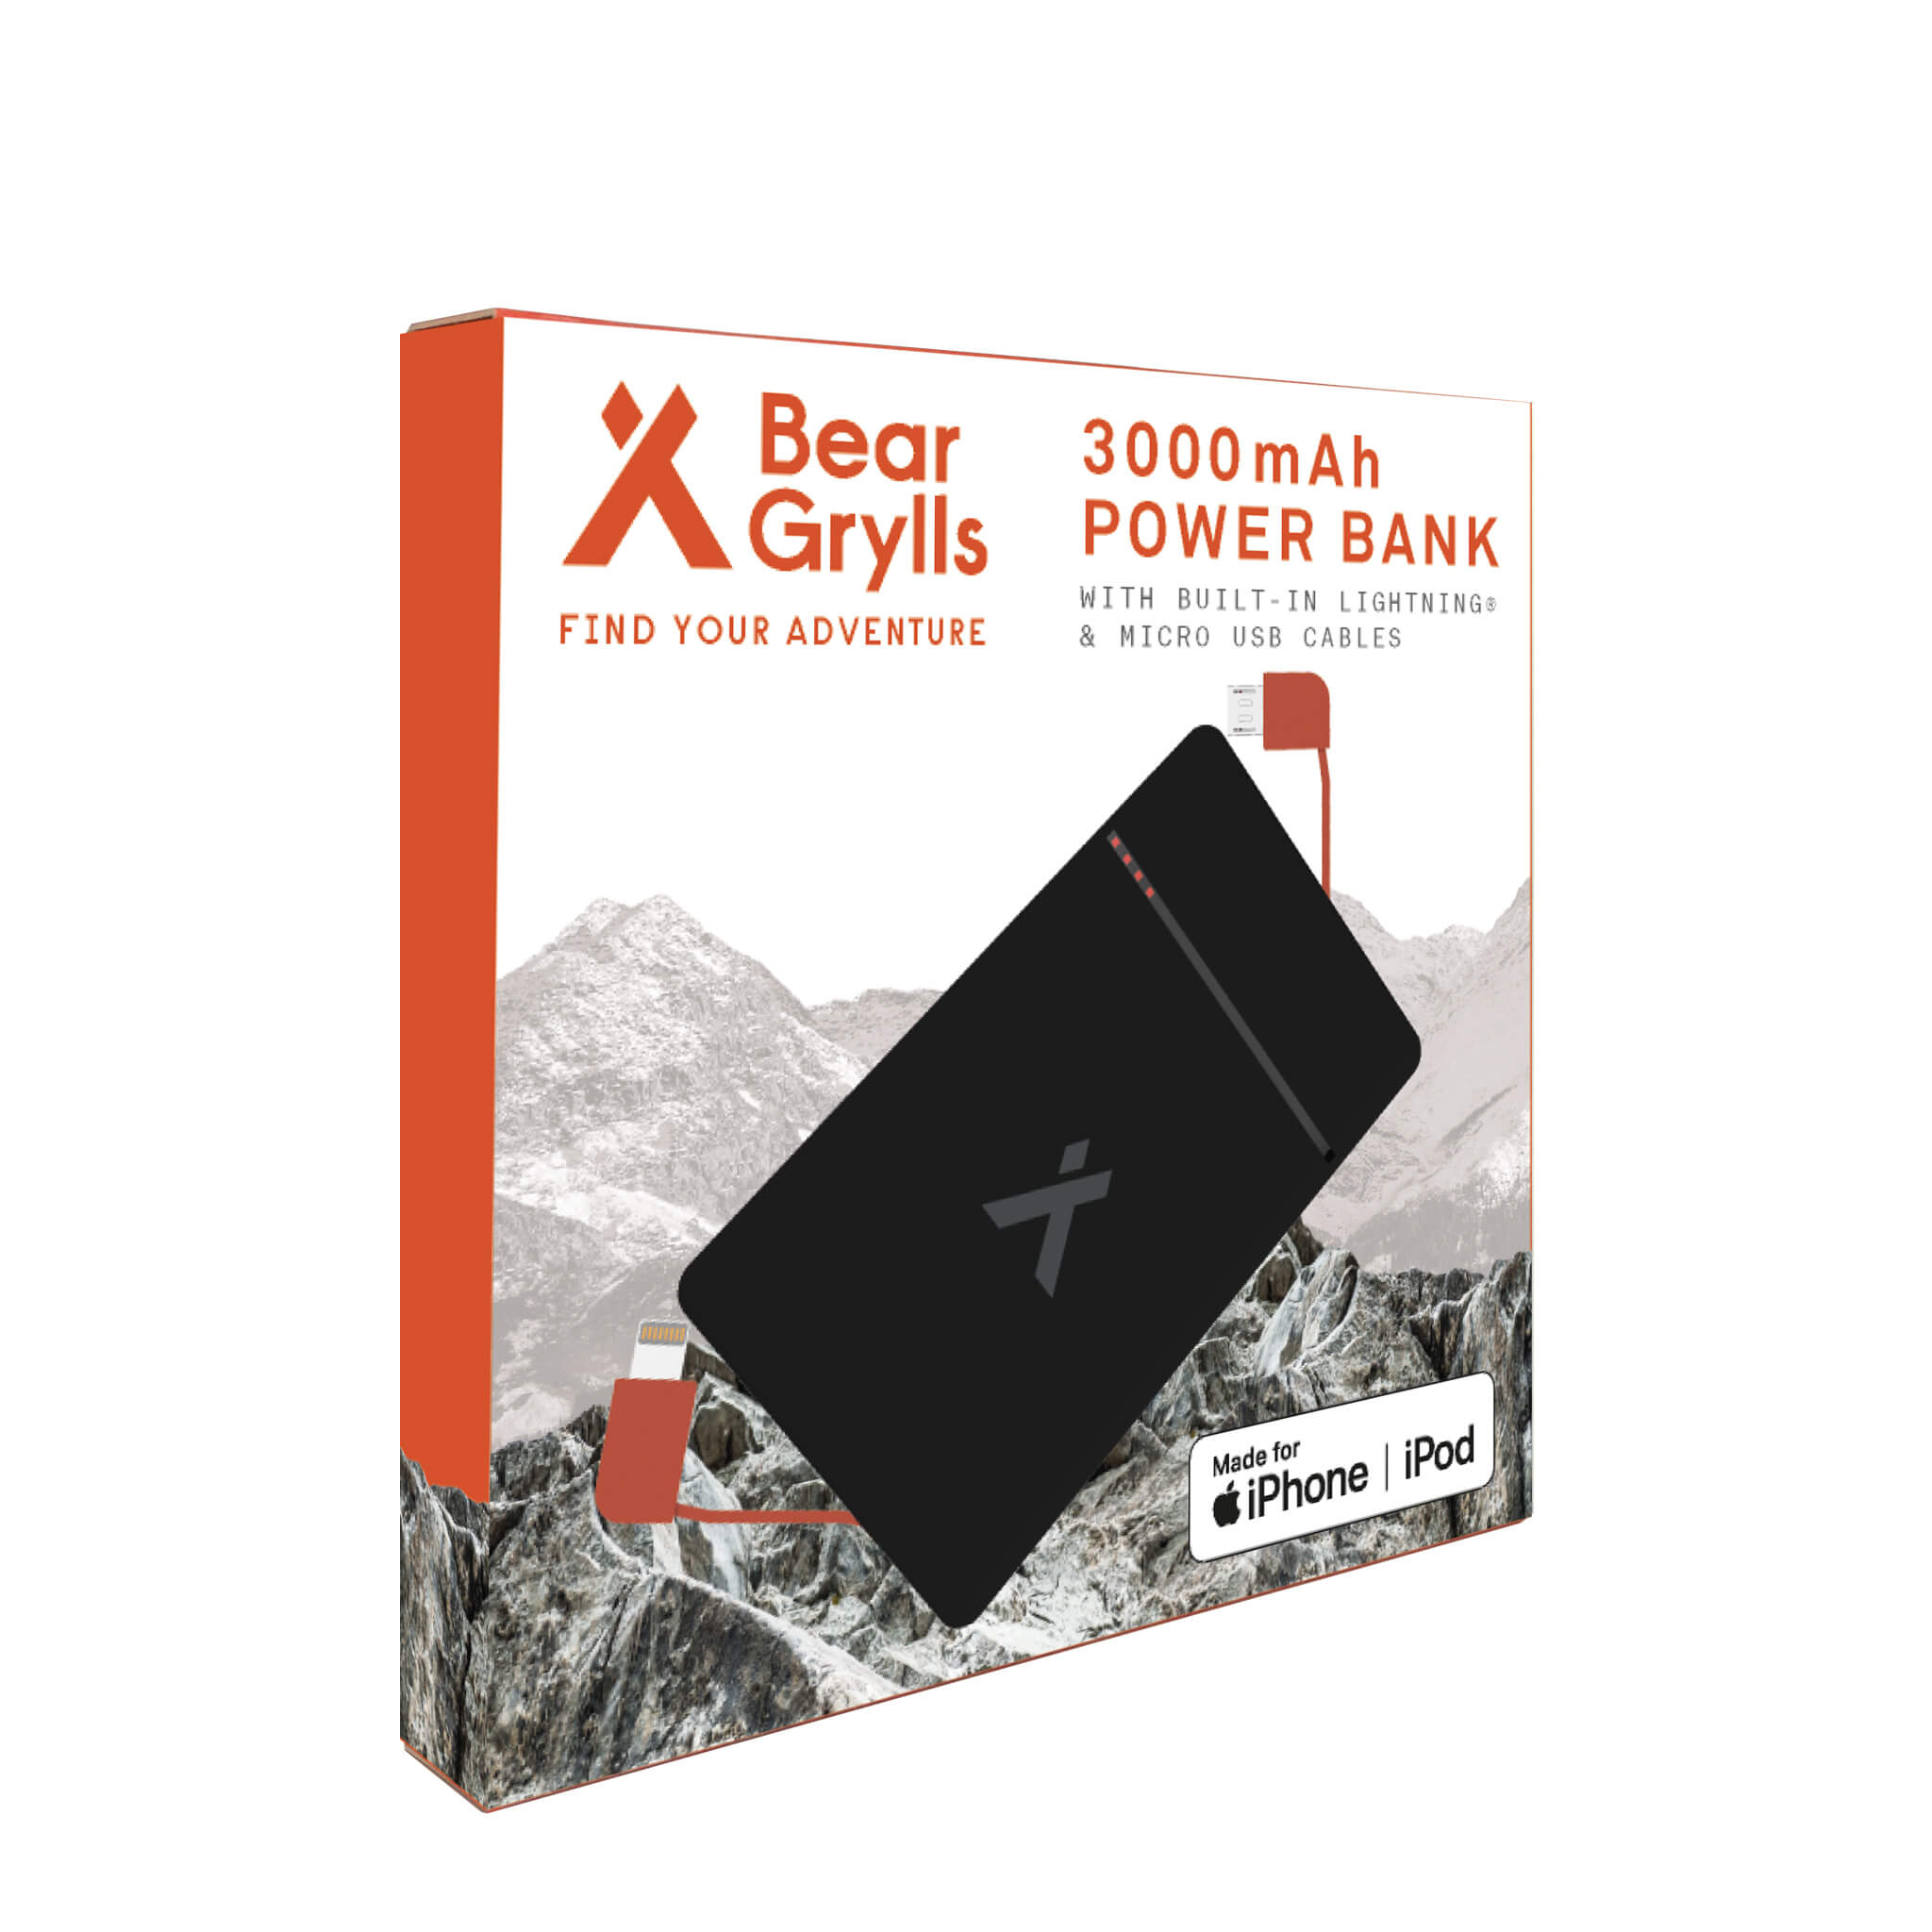 Packing of the Bear Grylls 3,000mAh power bank